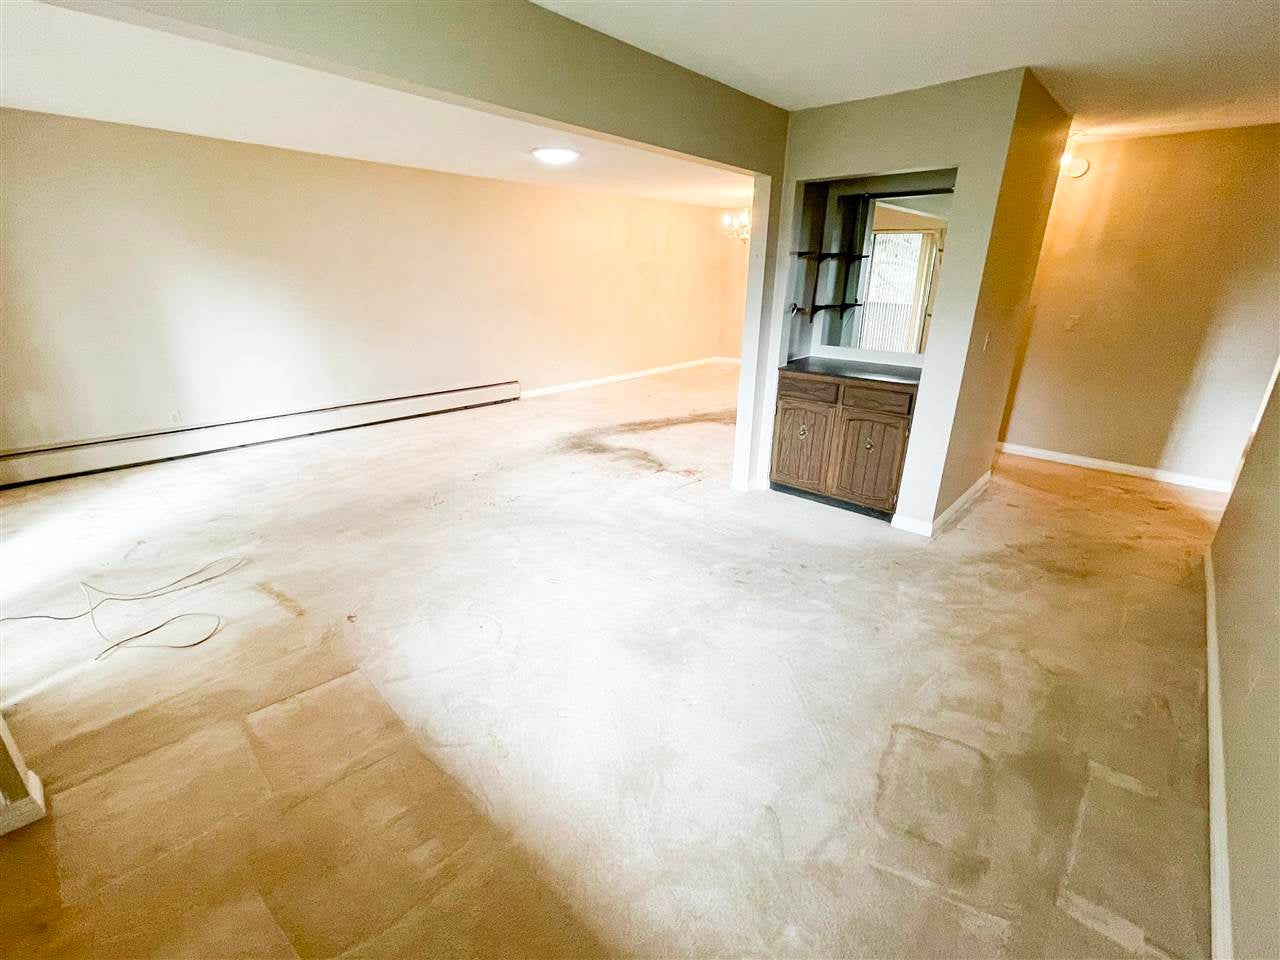 304 1554 GEORGE STREET - White Rock Apartment/Condo for sale, 1 Bedroom (R2573966) - #9